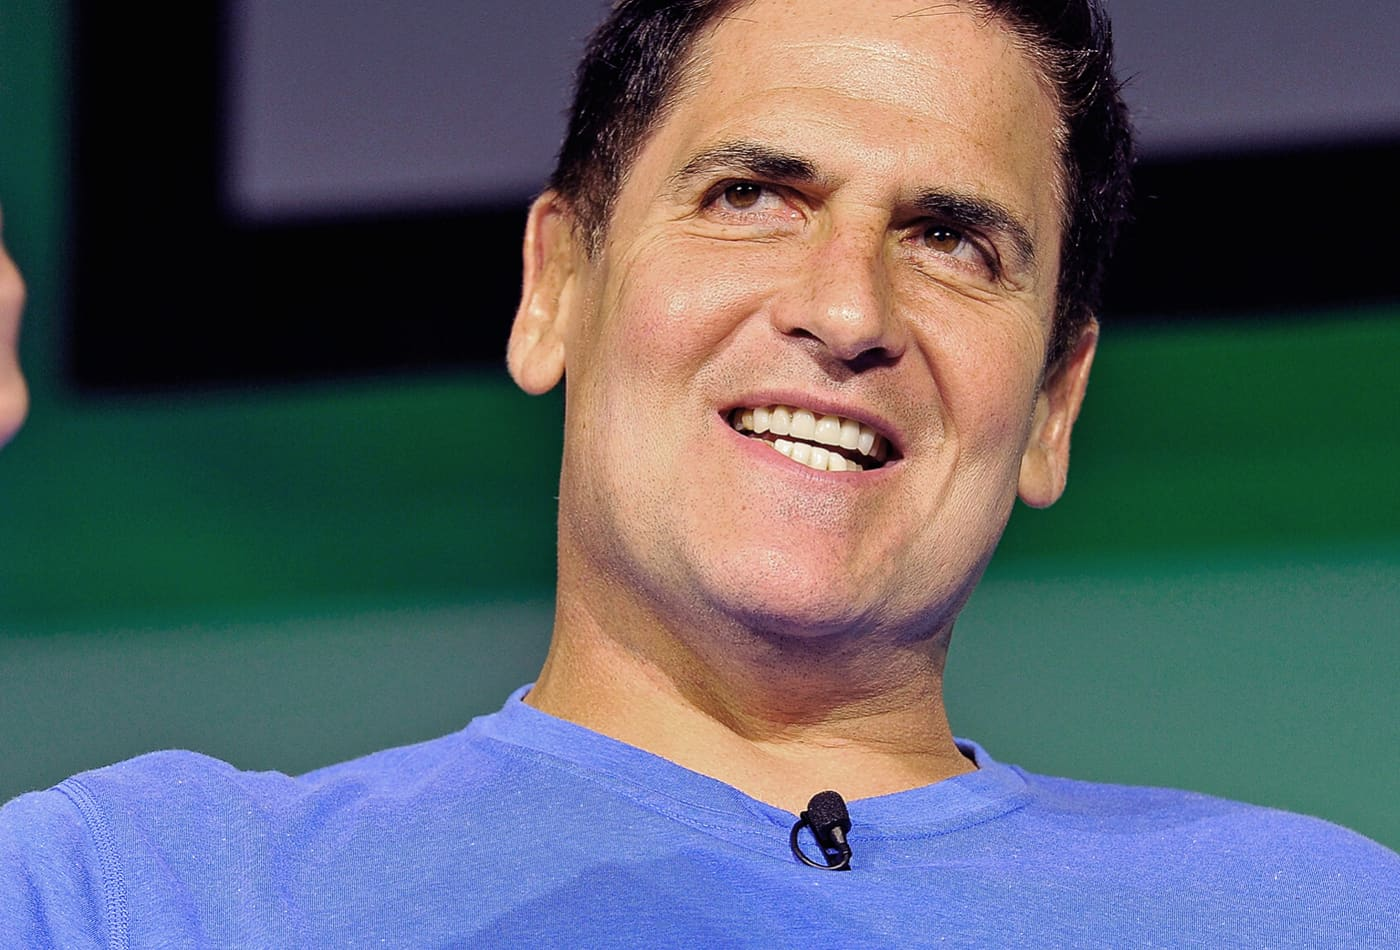 Mark Cuban: If you haven't read this, you should